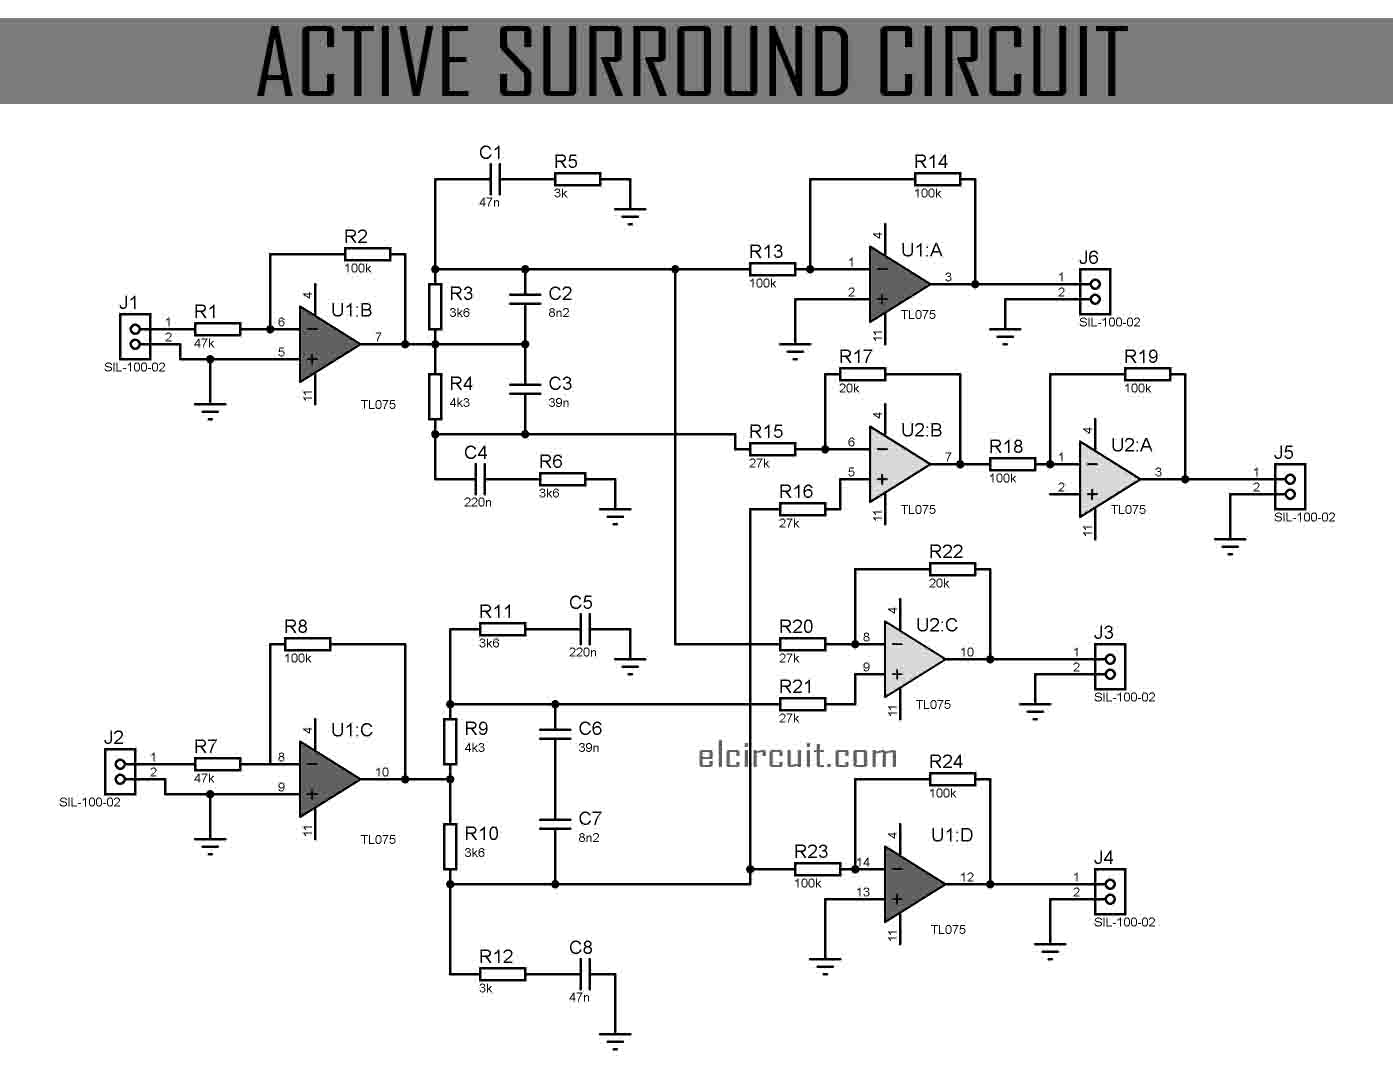 medium resolution of below the active surround sound circuit diagram include regulated power supply 12v